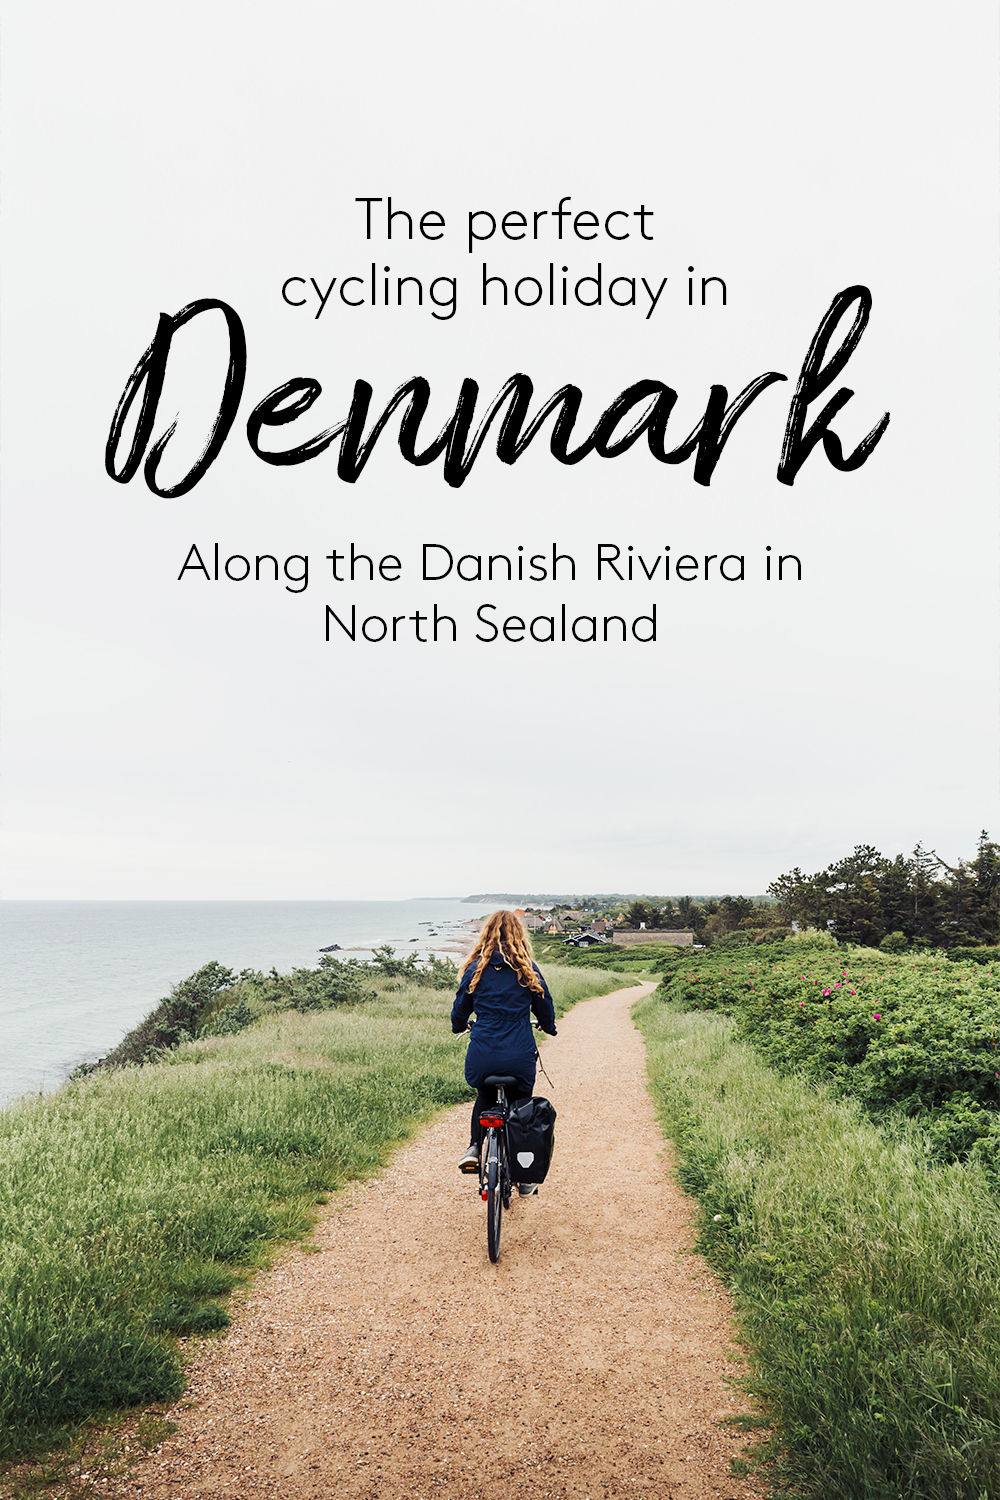 Cycling holiday in Denmark - along the Danish Riviera in North Sealand